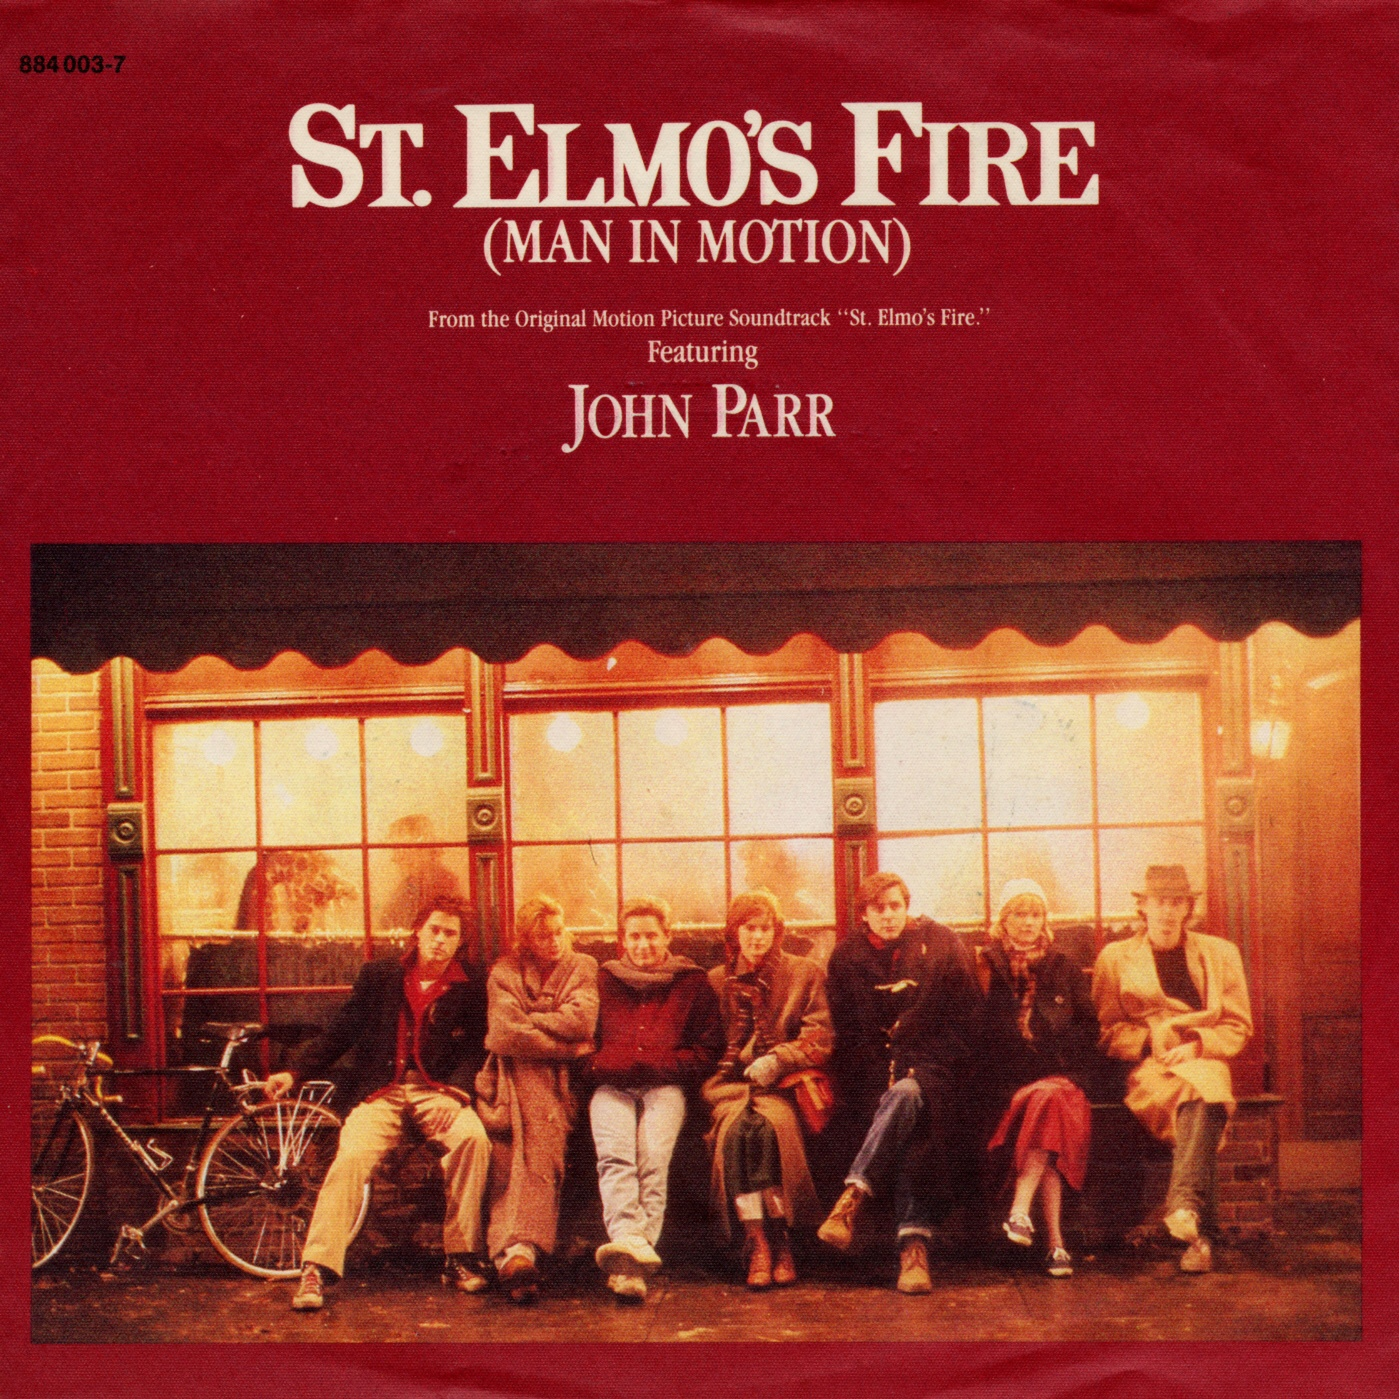 Cover: St. Elmo's Fire (Man in motion), John Parr